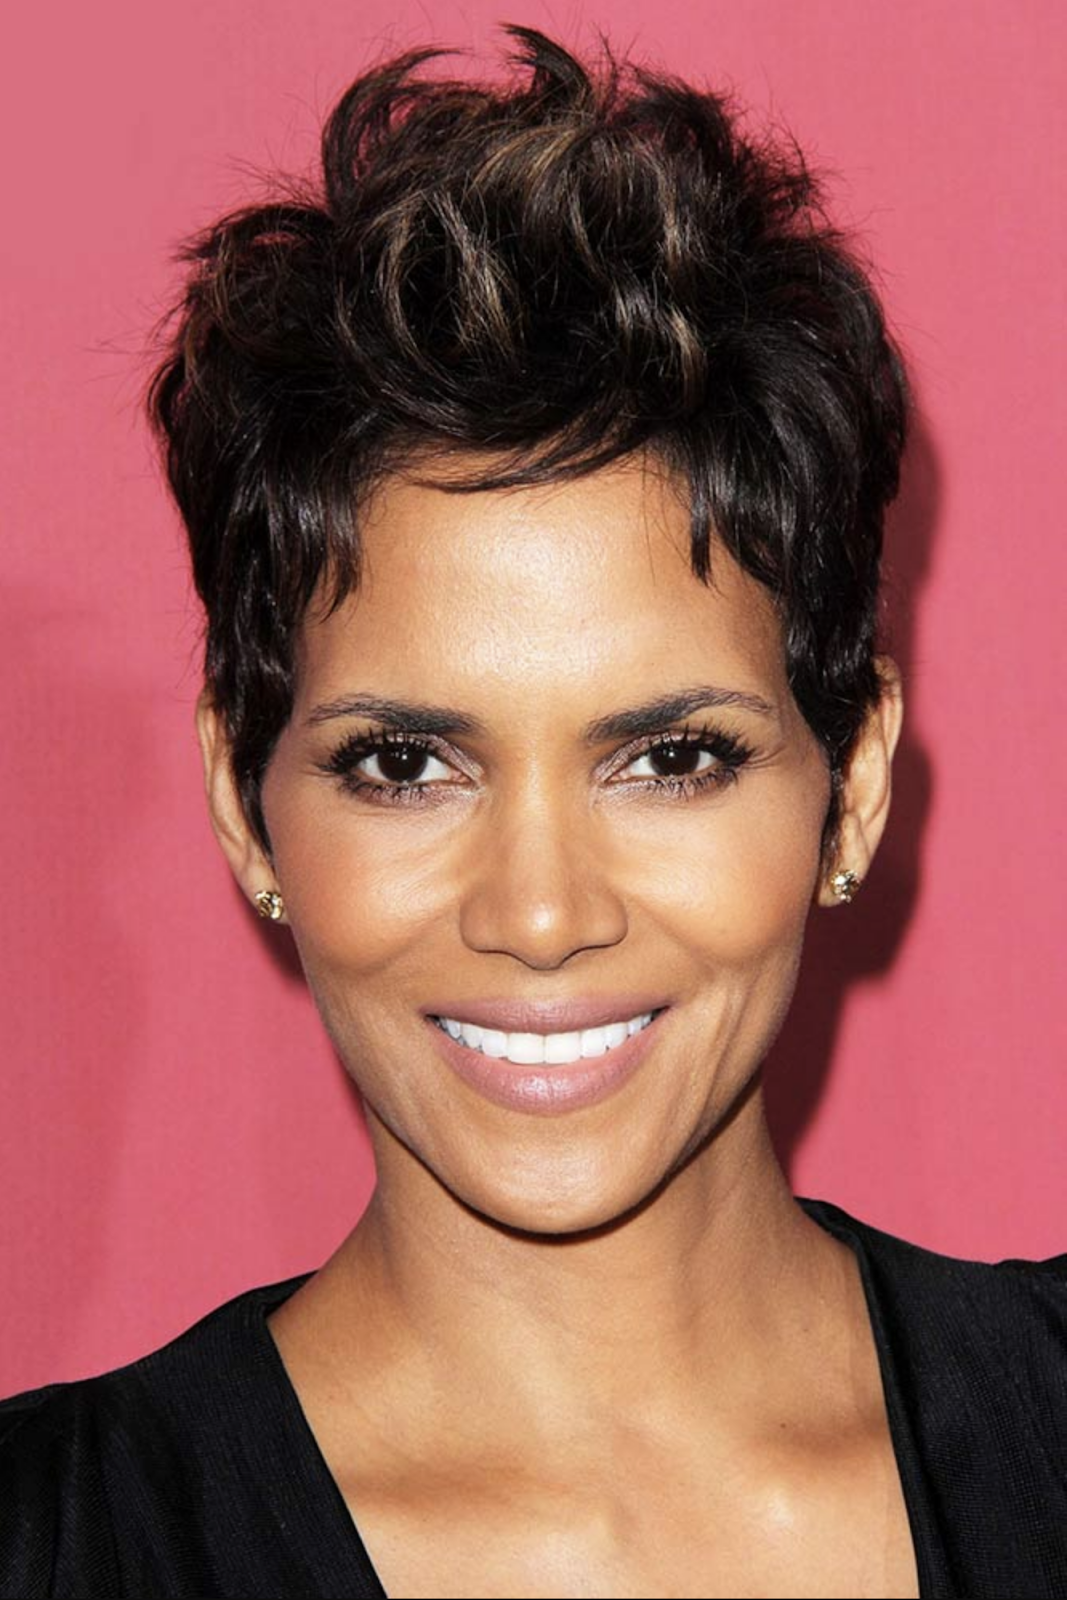 7 Most Popular of the 2020 Short hairstyles Era